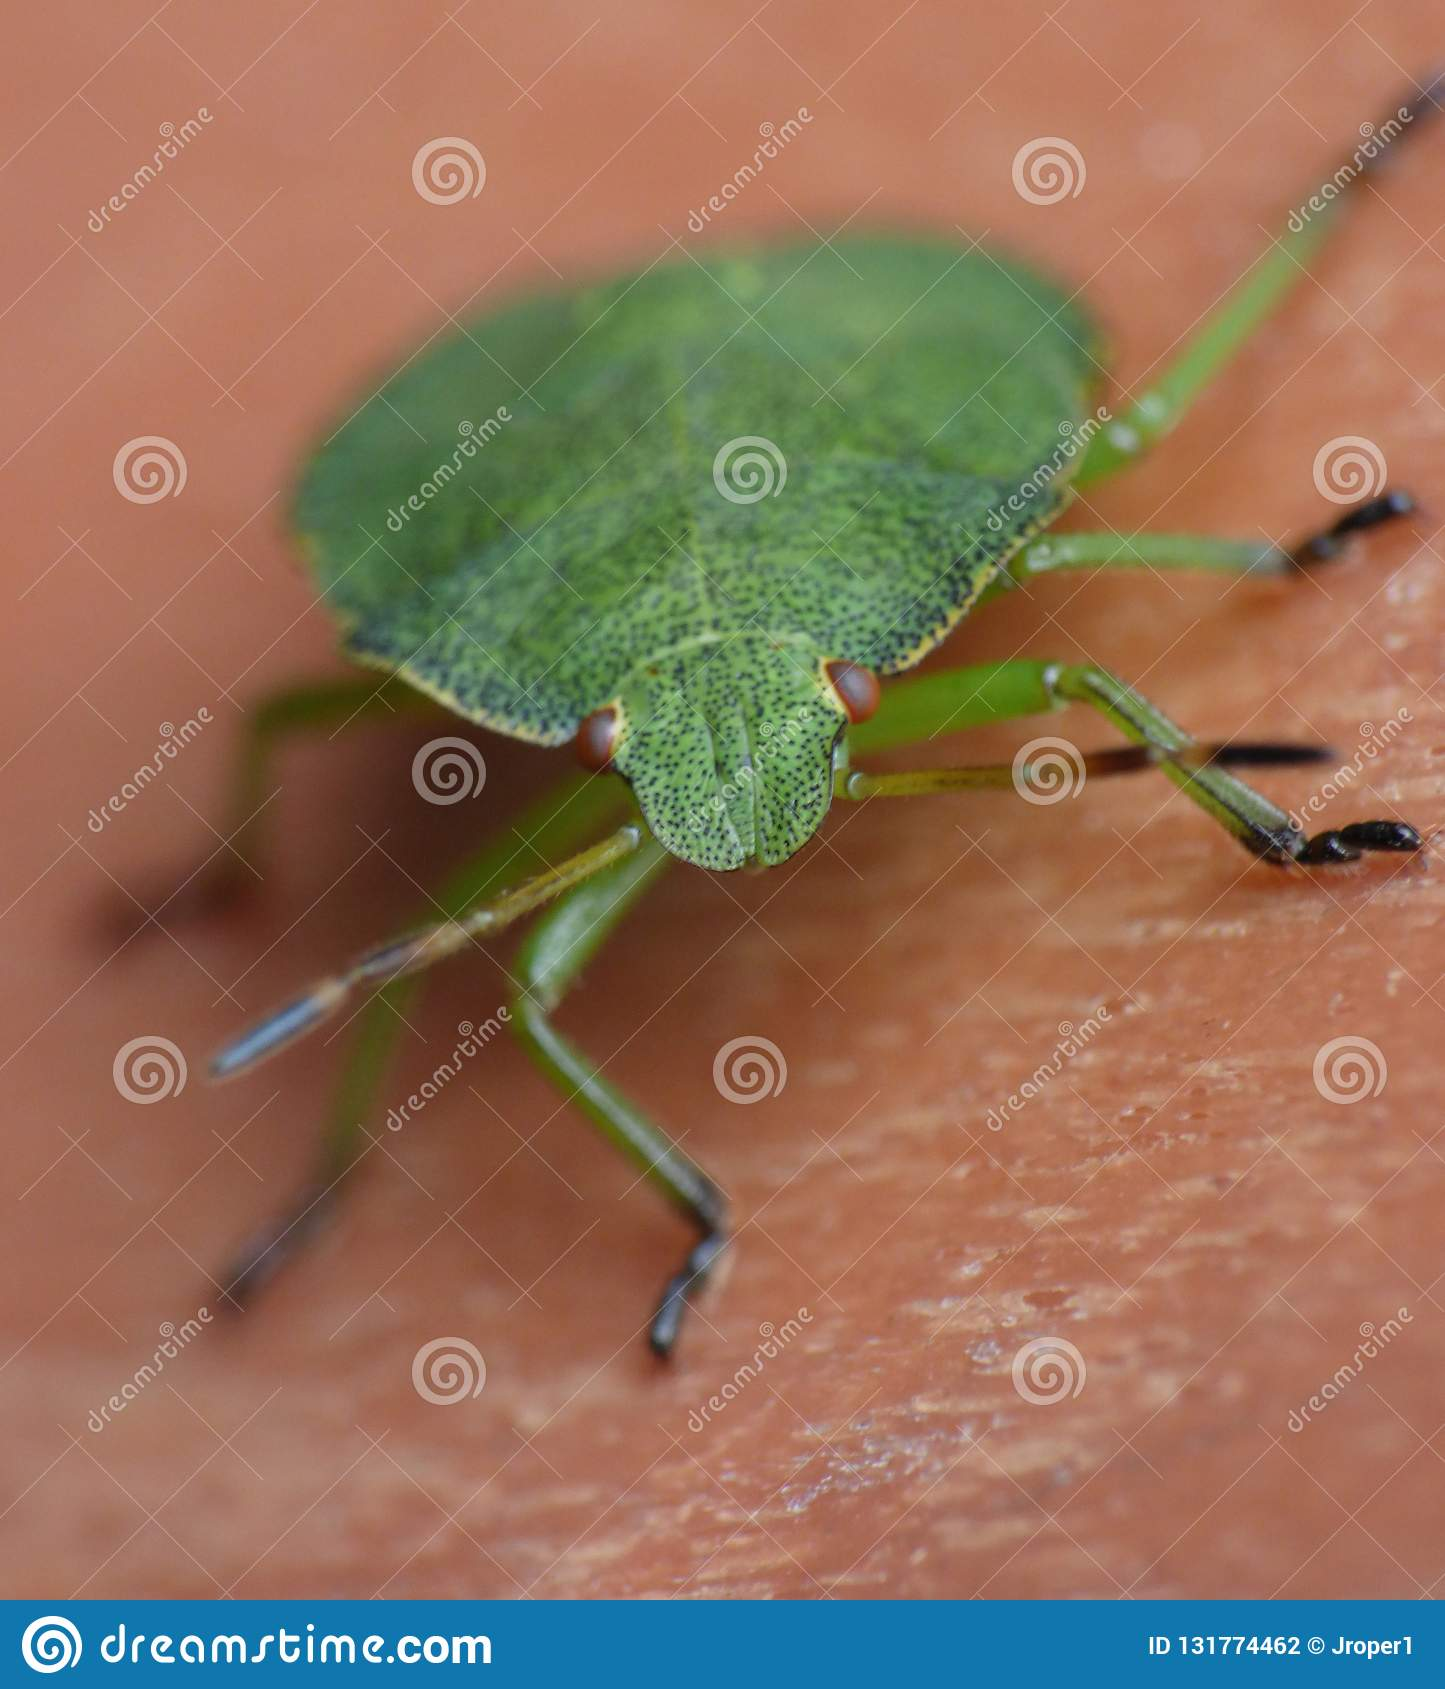 Macro close up of a green shield bug / Stink bug, photo taken in the UK